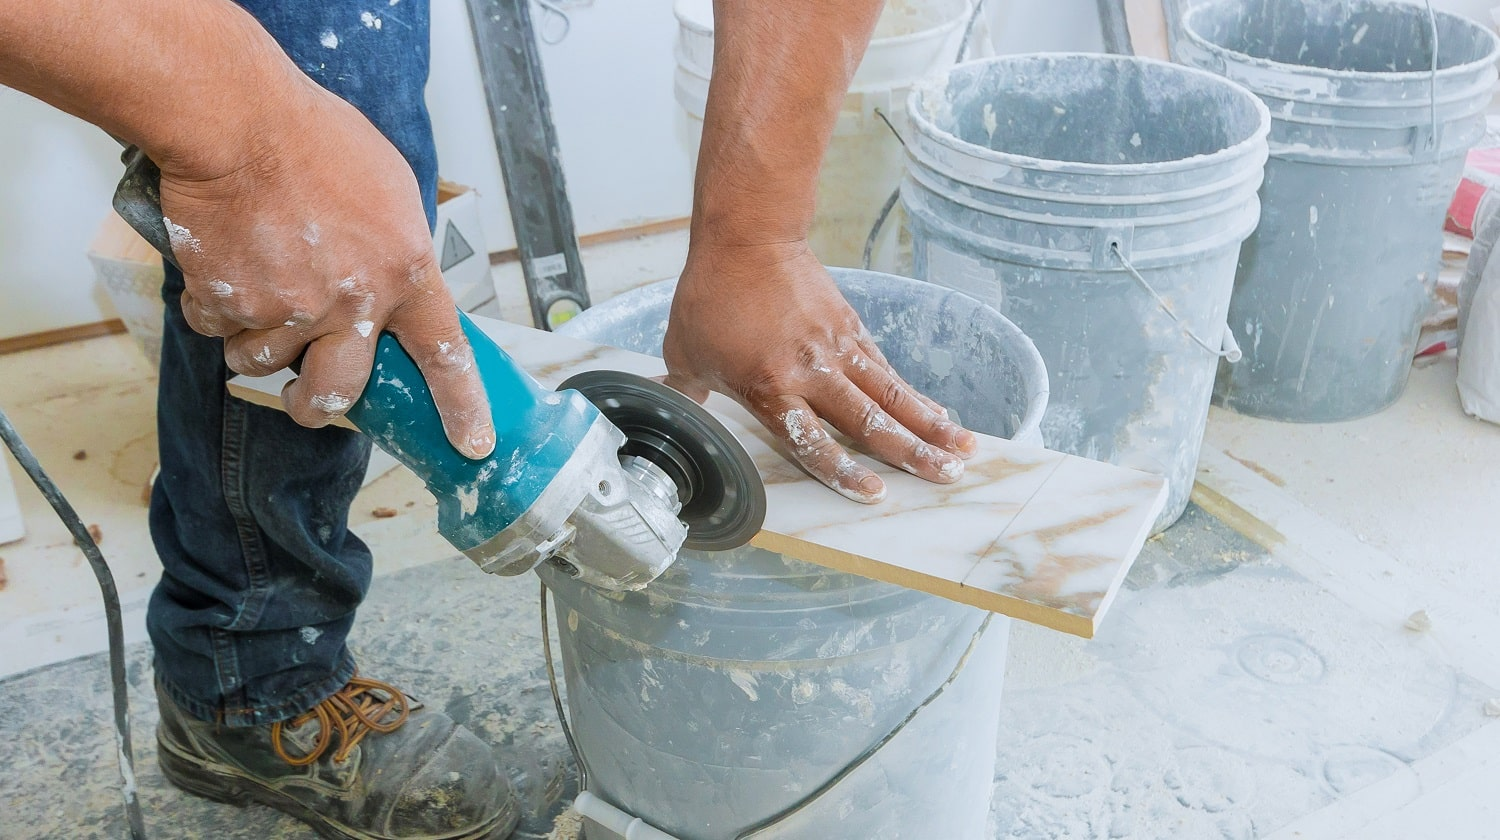 A construction worker cutting a tile using grinder round the ceramic disc